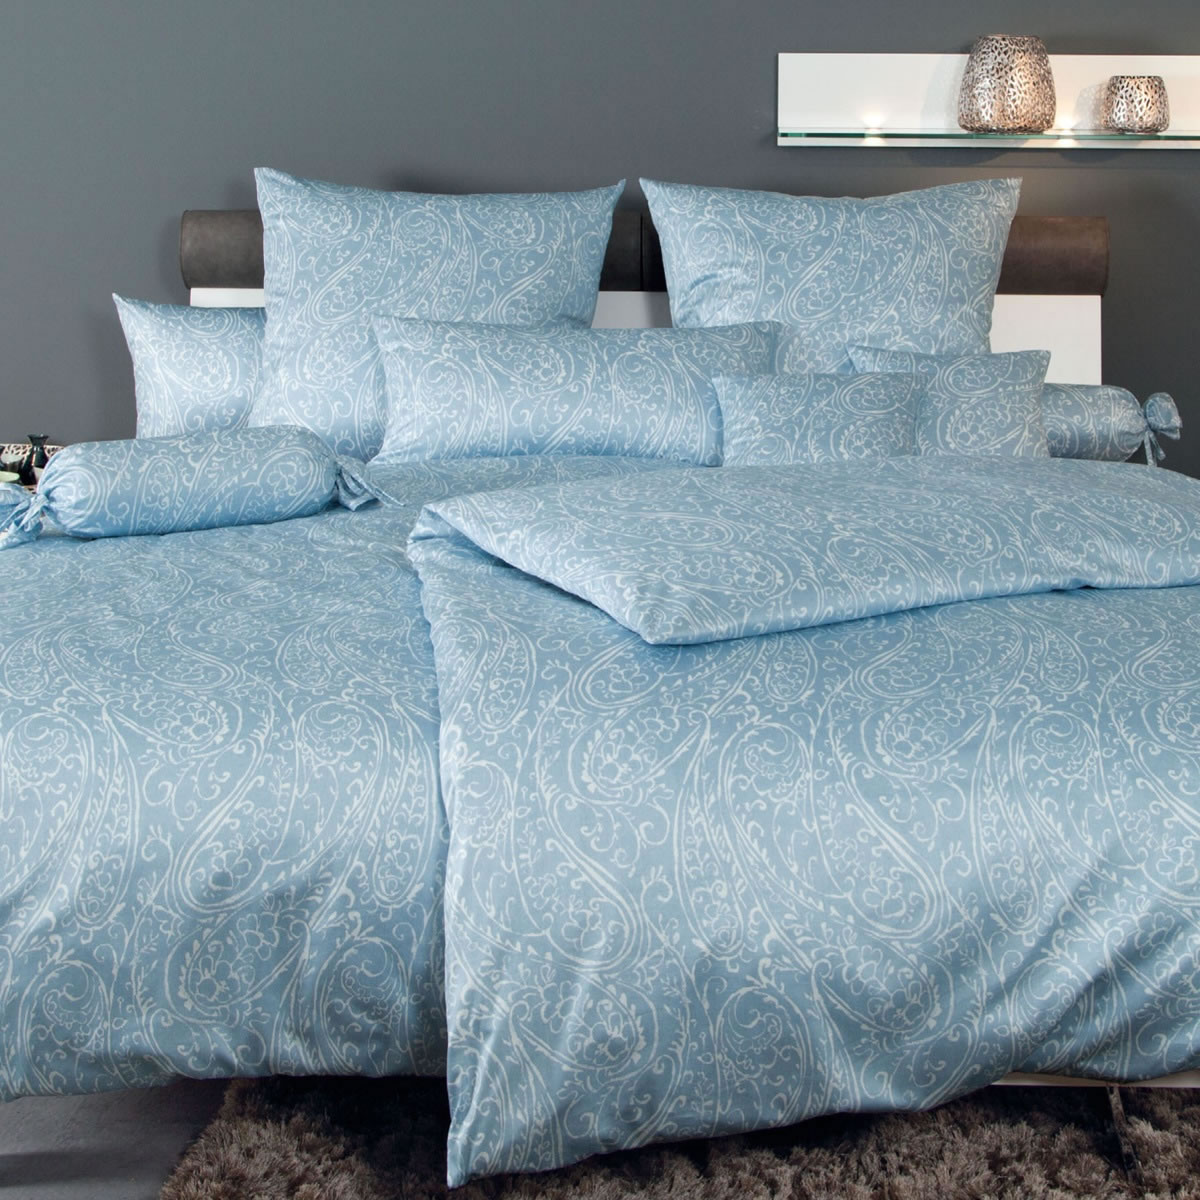 janine mako interlock jersey bettw sche carmen design 5507 02 paisley blau wei ebay. Black Bedroom Furniture Sets. Home Design Ideas